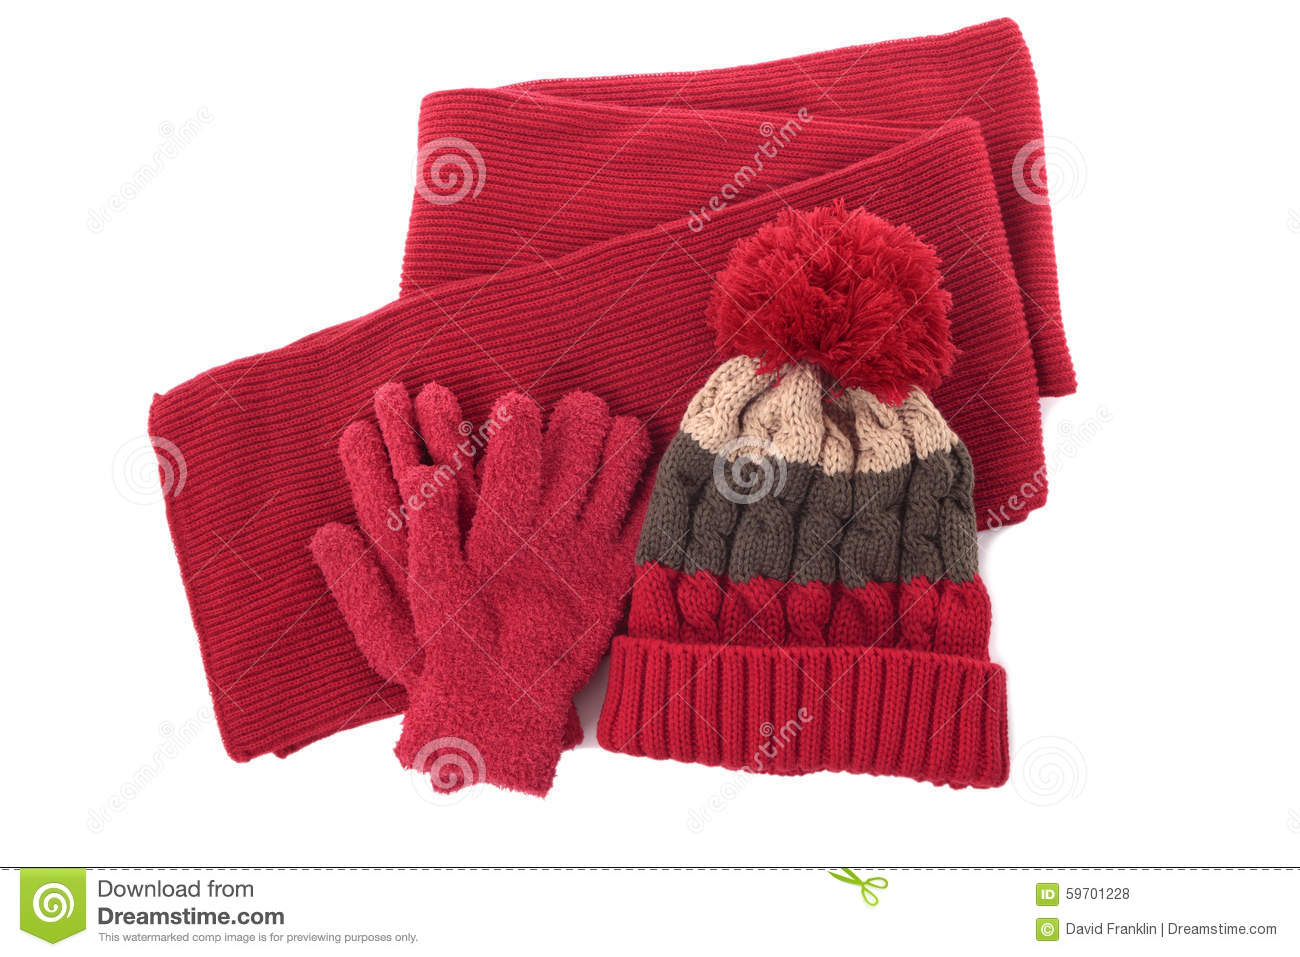 c4843a3f4ee Red winter knitted bobble hat